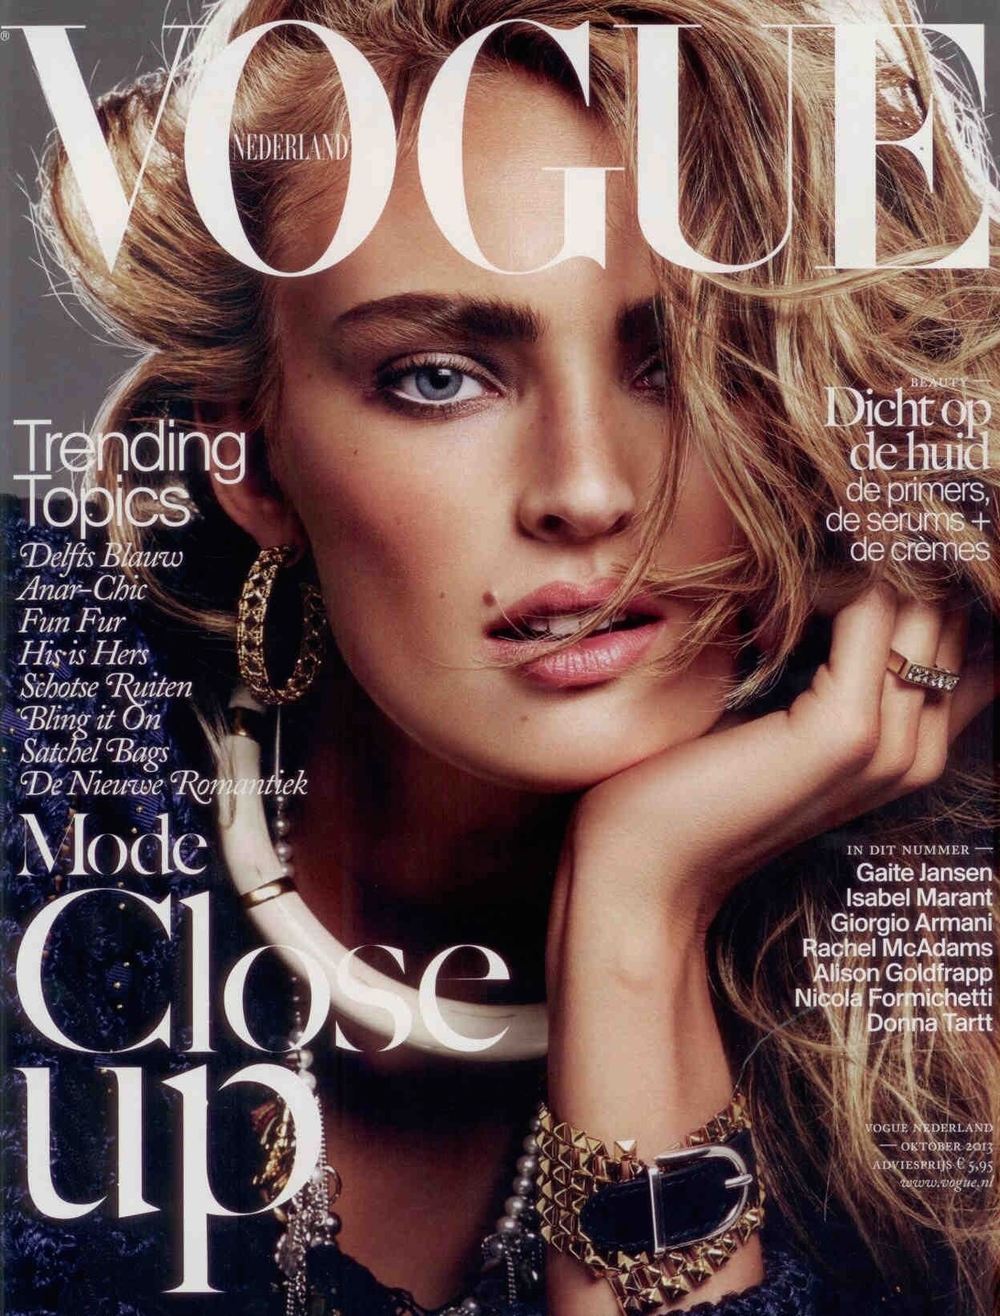 Copy of VOGUE, Netherlands